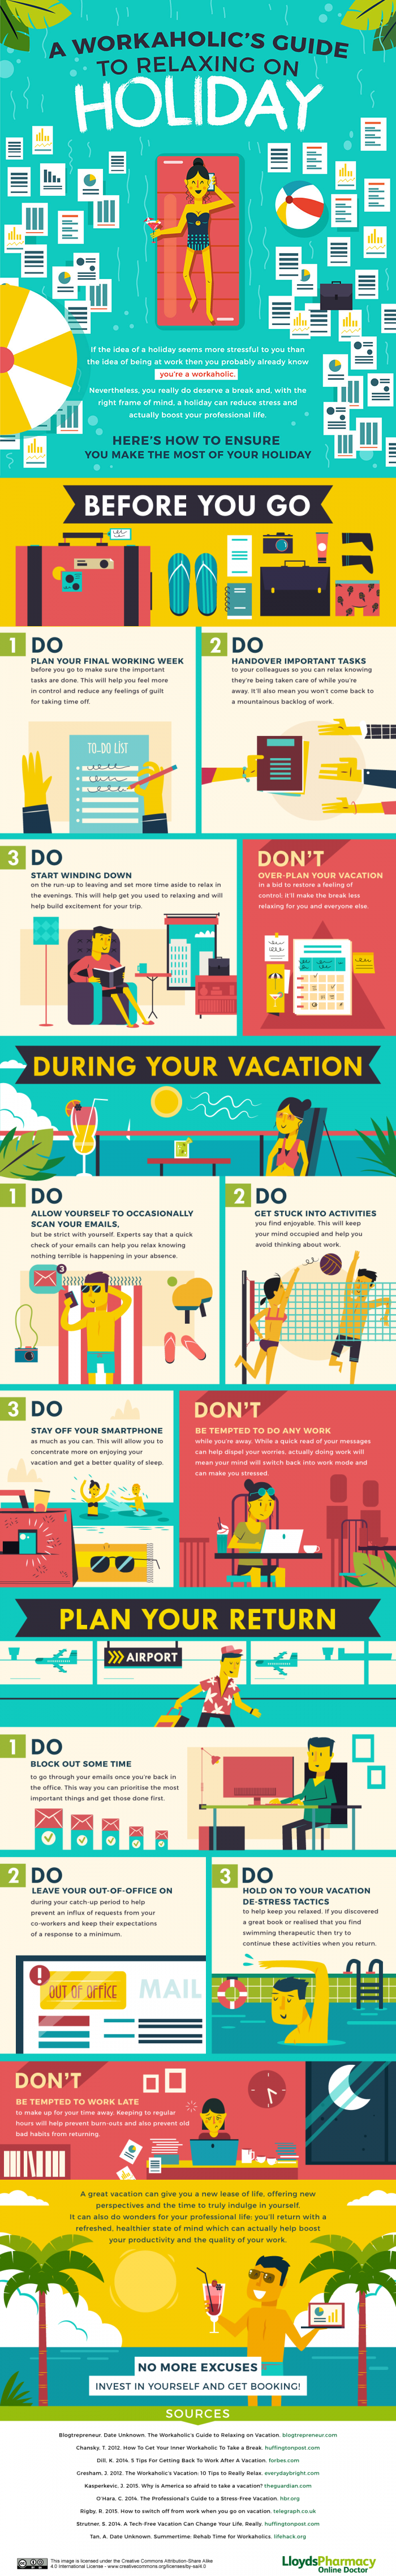 A Workaholic's Guide to Holiday Relaxation #infographic